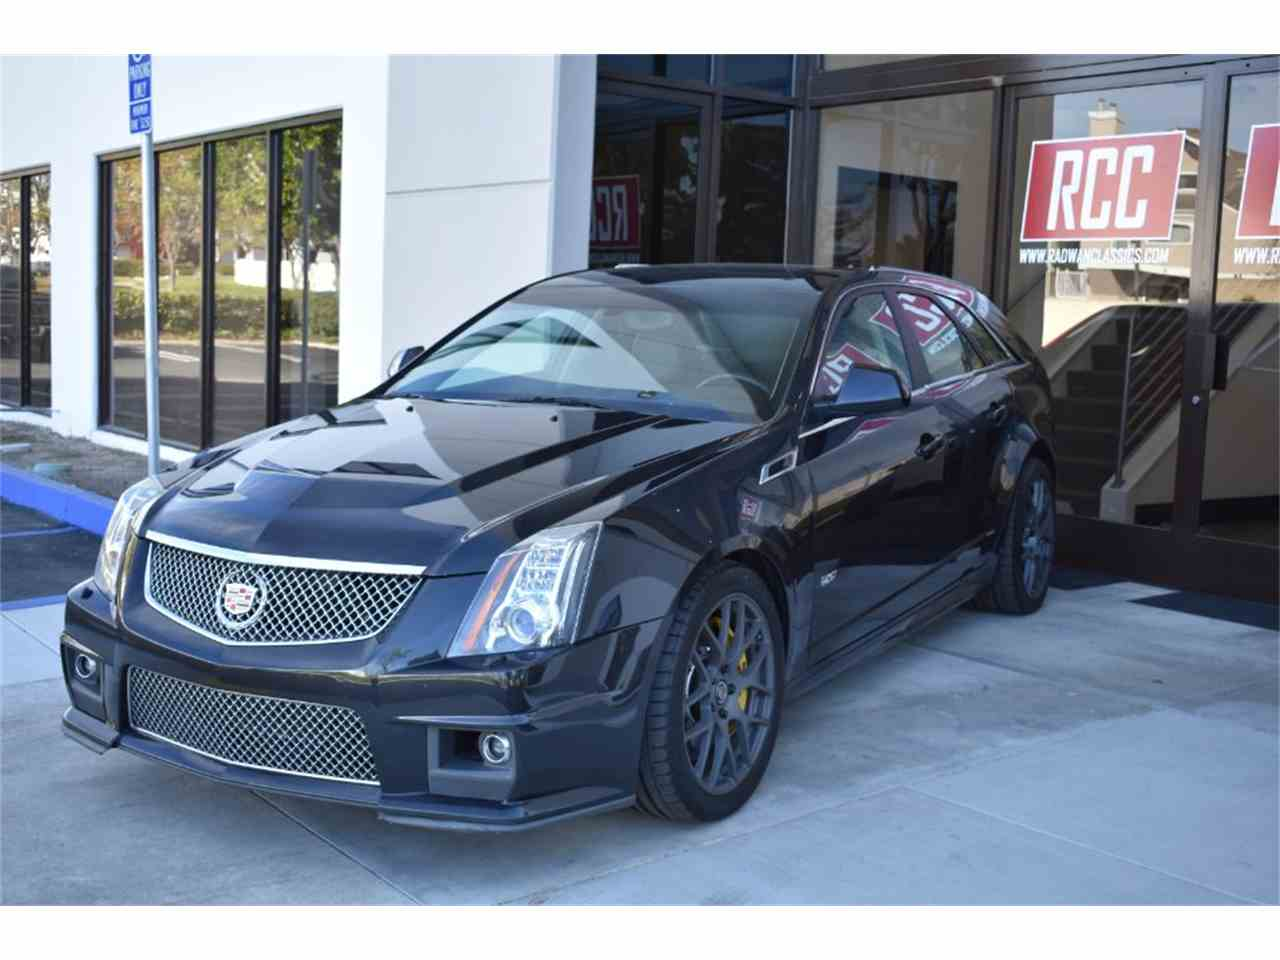 2012 Cadillac Cts For Sale Classiccars Com Cc 1056380